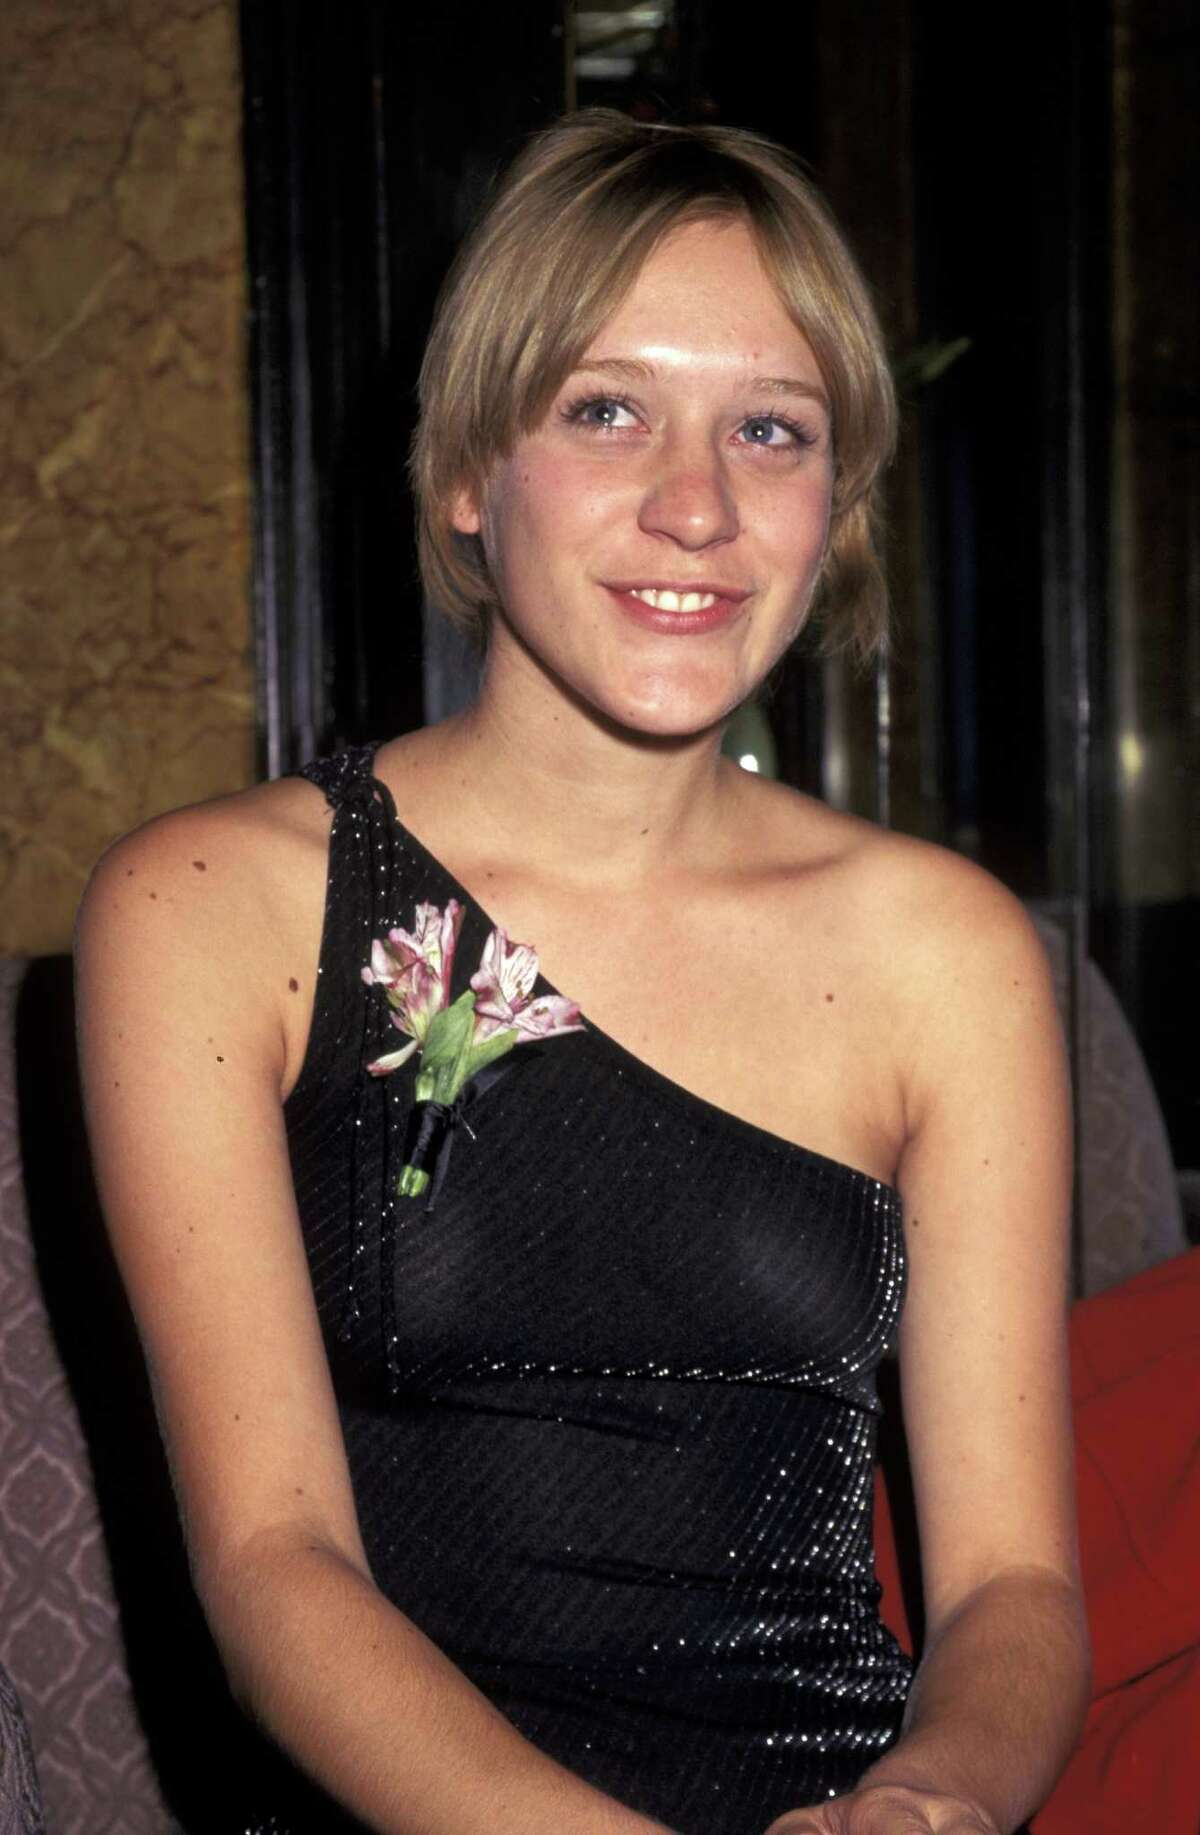 Chloe Sevigny, whose birthday is Nov. 18, 1974, is the latest star to turn 40. She's in good company. Take a look at the other celebs who have or will hit this milestone birthday this year. (Photo: 1996)